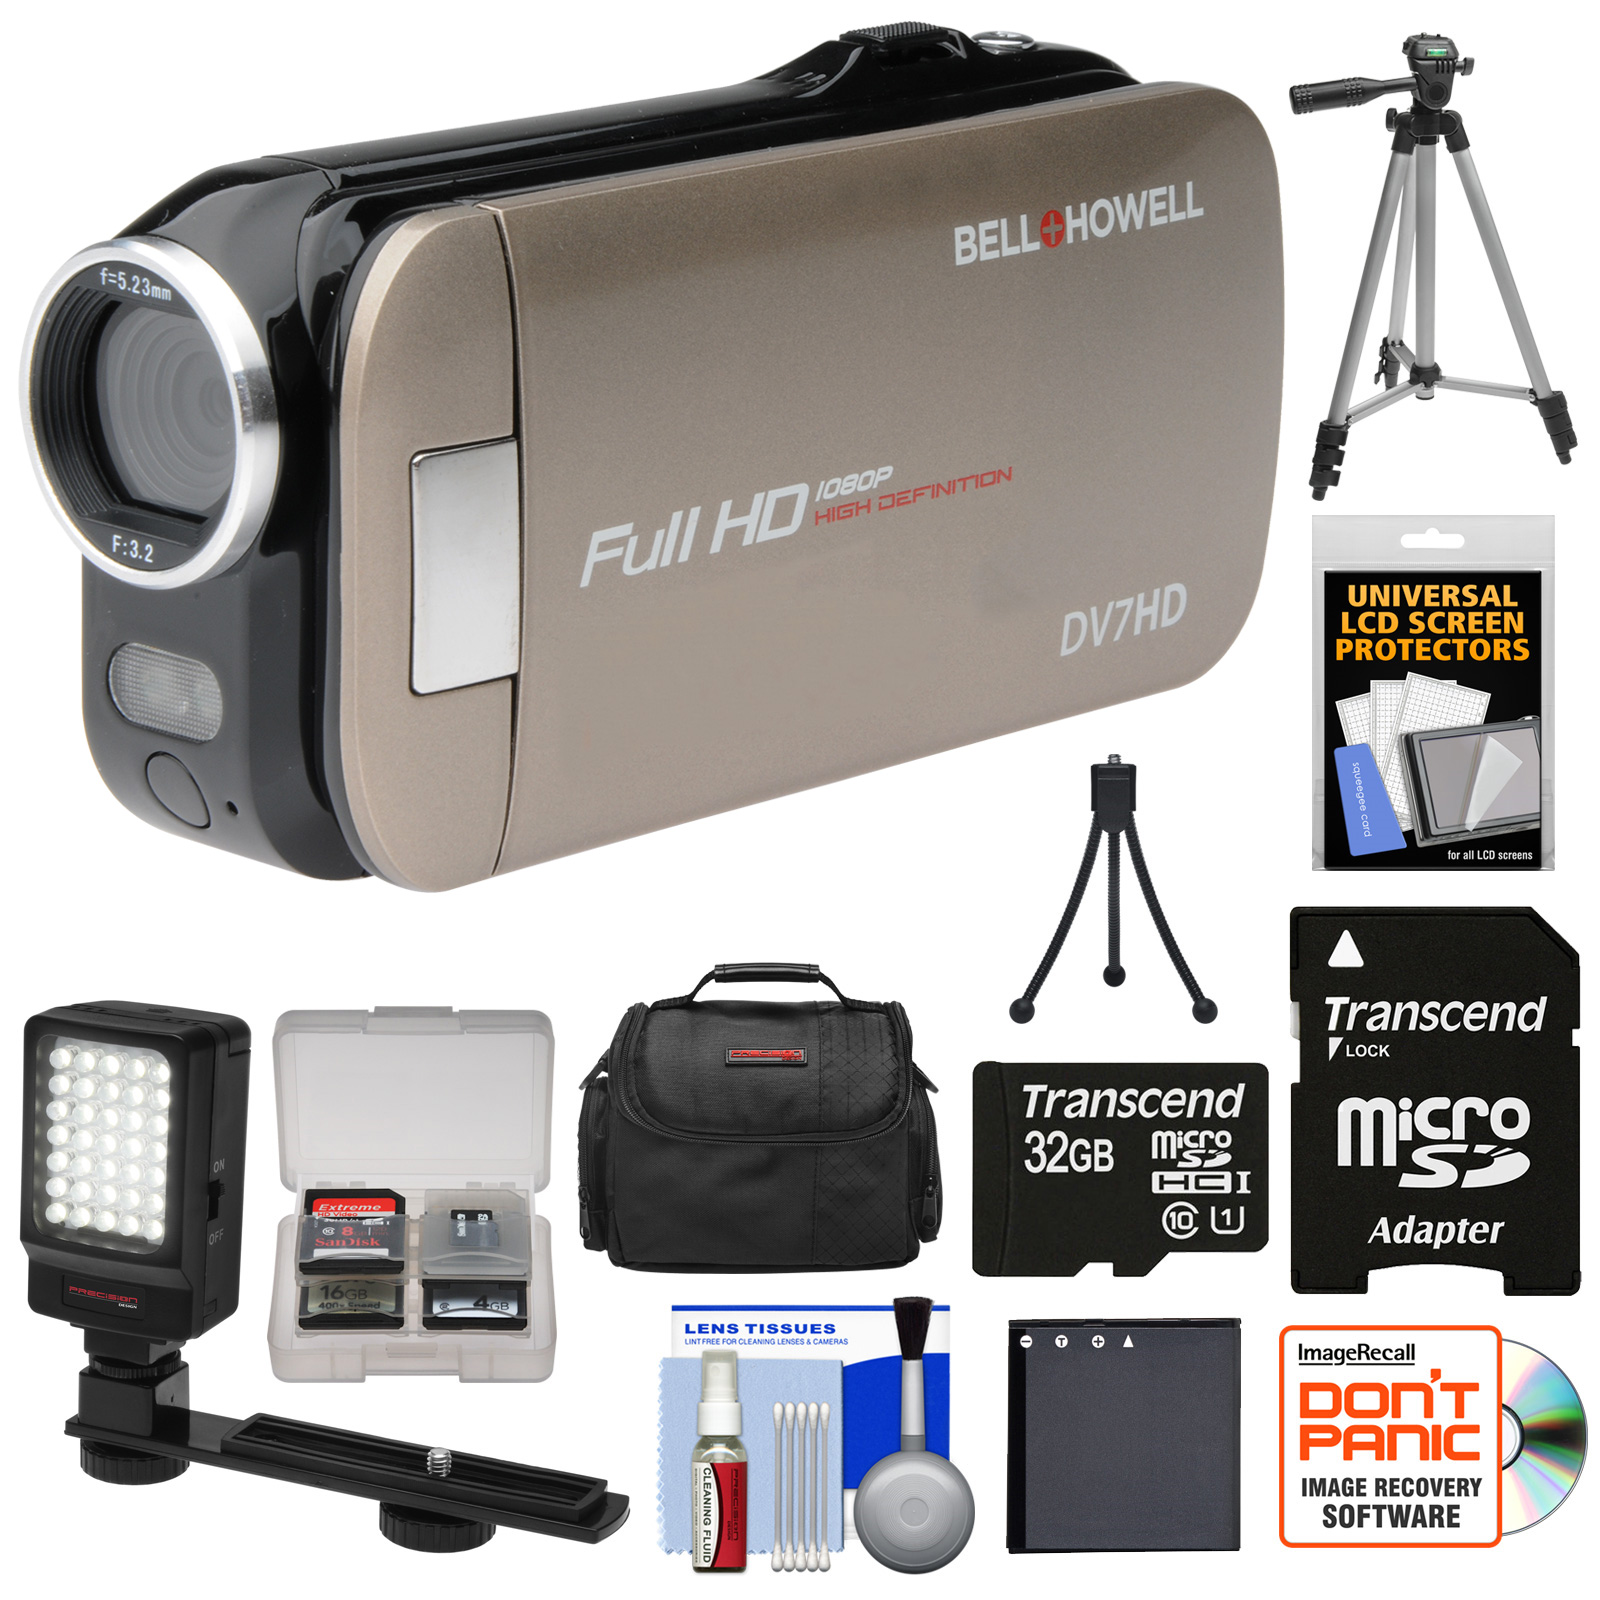 Bell + Howell Bell & Howell Slice2 DV7HD 1080p HD Slim Video Camera Camcorder (Champagne) with 32GB Card + Battery + Case + Tripods + LED Light + Kit